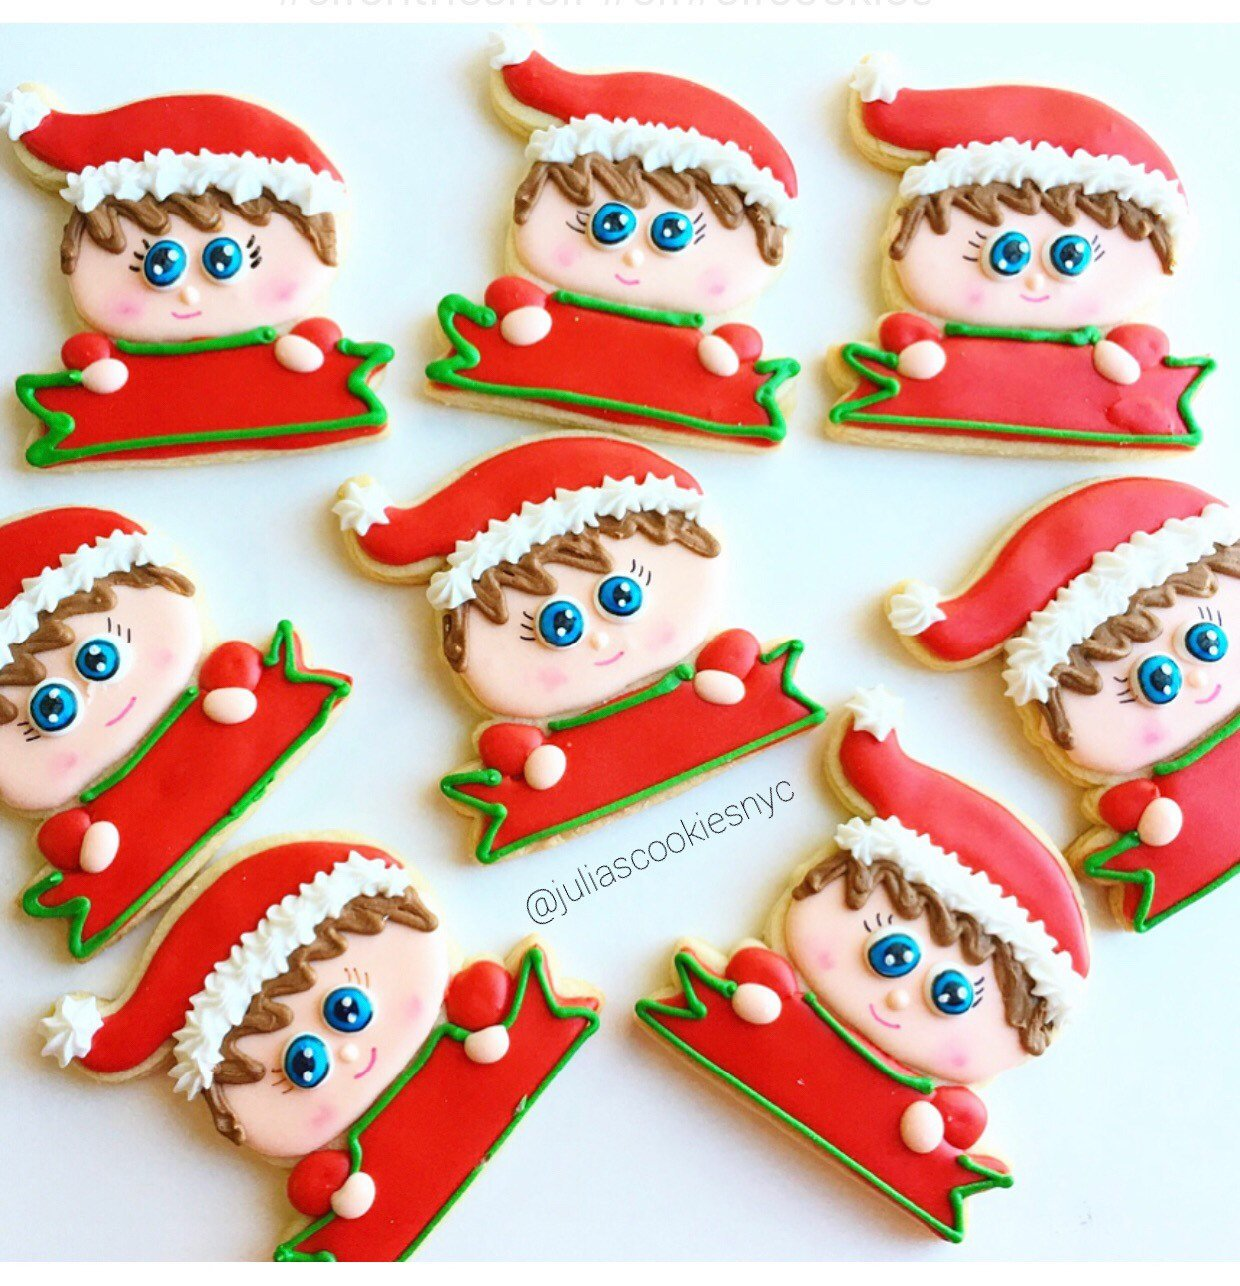 "Christmas Elf Iced Sugar Cookies by Julia Perugini from ""Cookies By Julia"" featured on TheIcedSugarCookie.com #elfcookies #elfsugarcookies #elf #sugarcookies #decoratedsugarcookies #christmascookies #christmas #theicedsugarcookie"